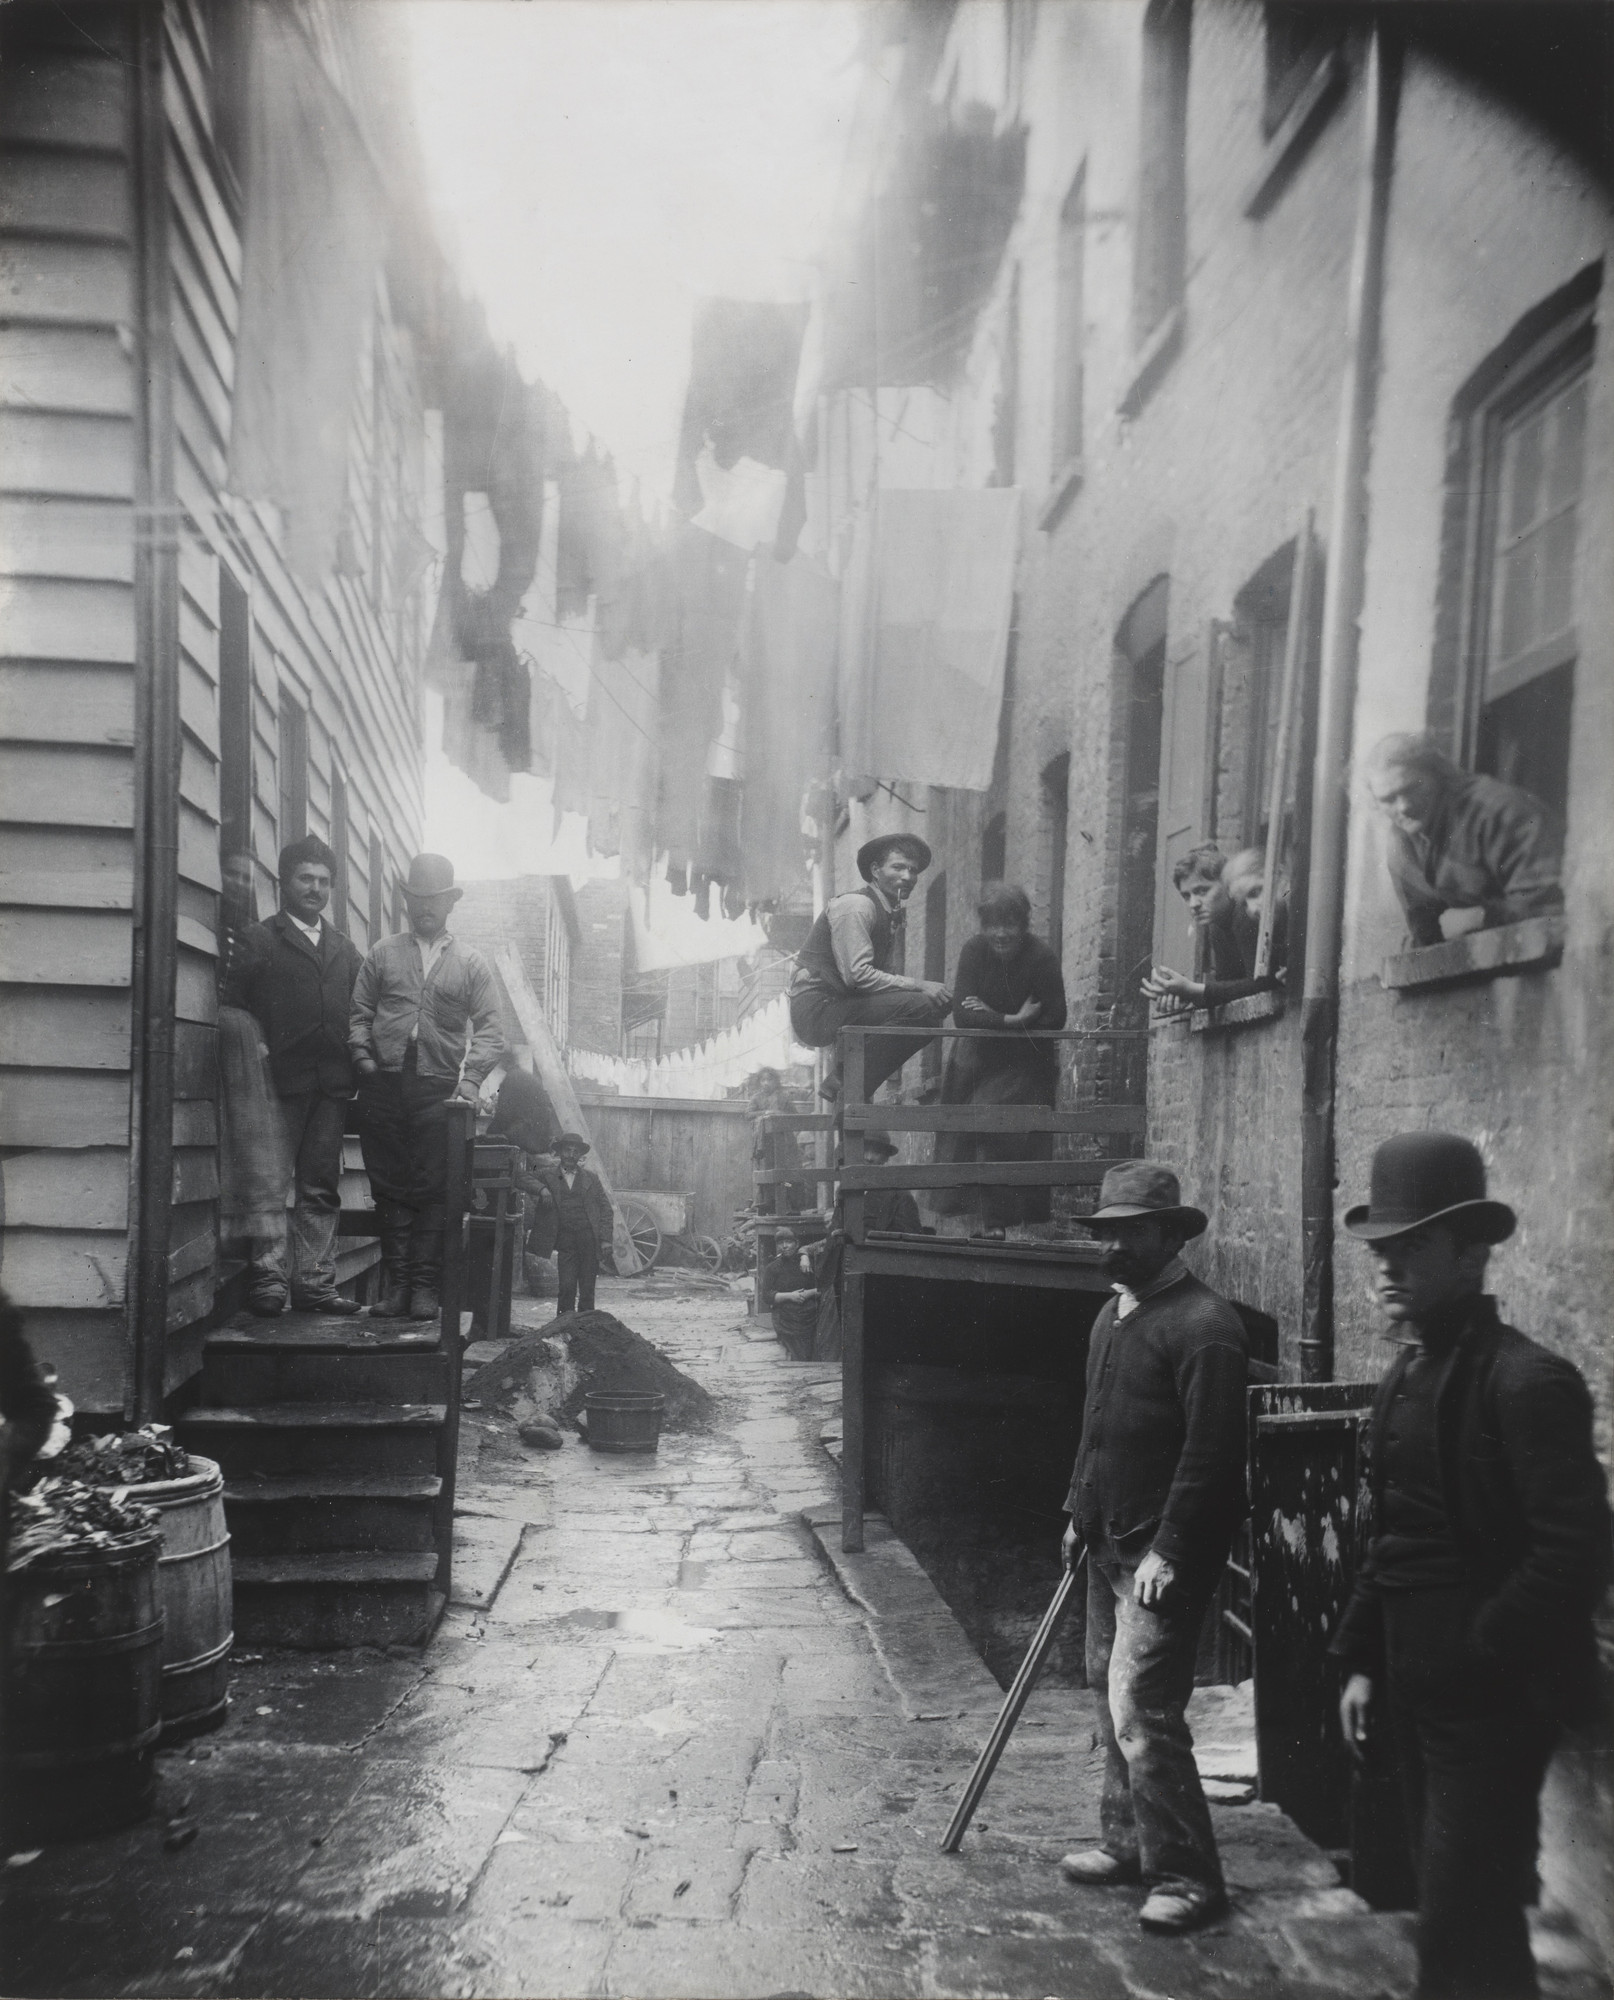 Jacob August Riis. Bandits' Roost, 59 1/2 Mulberry Street. 1888